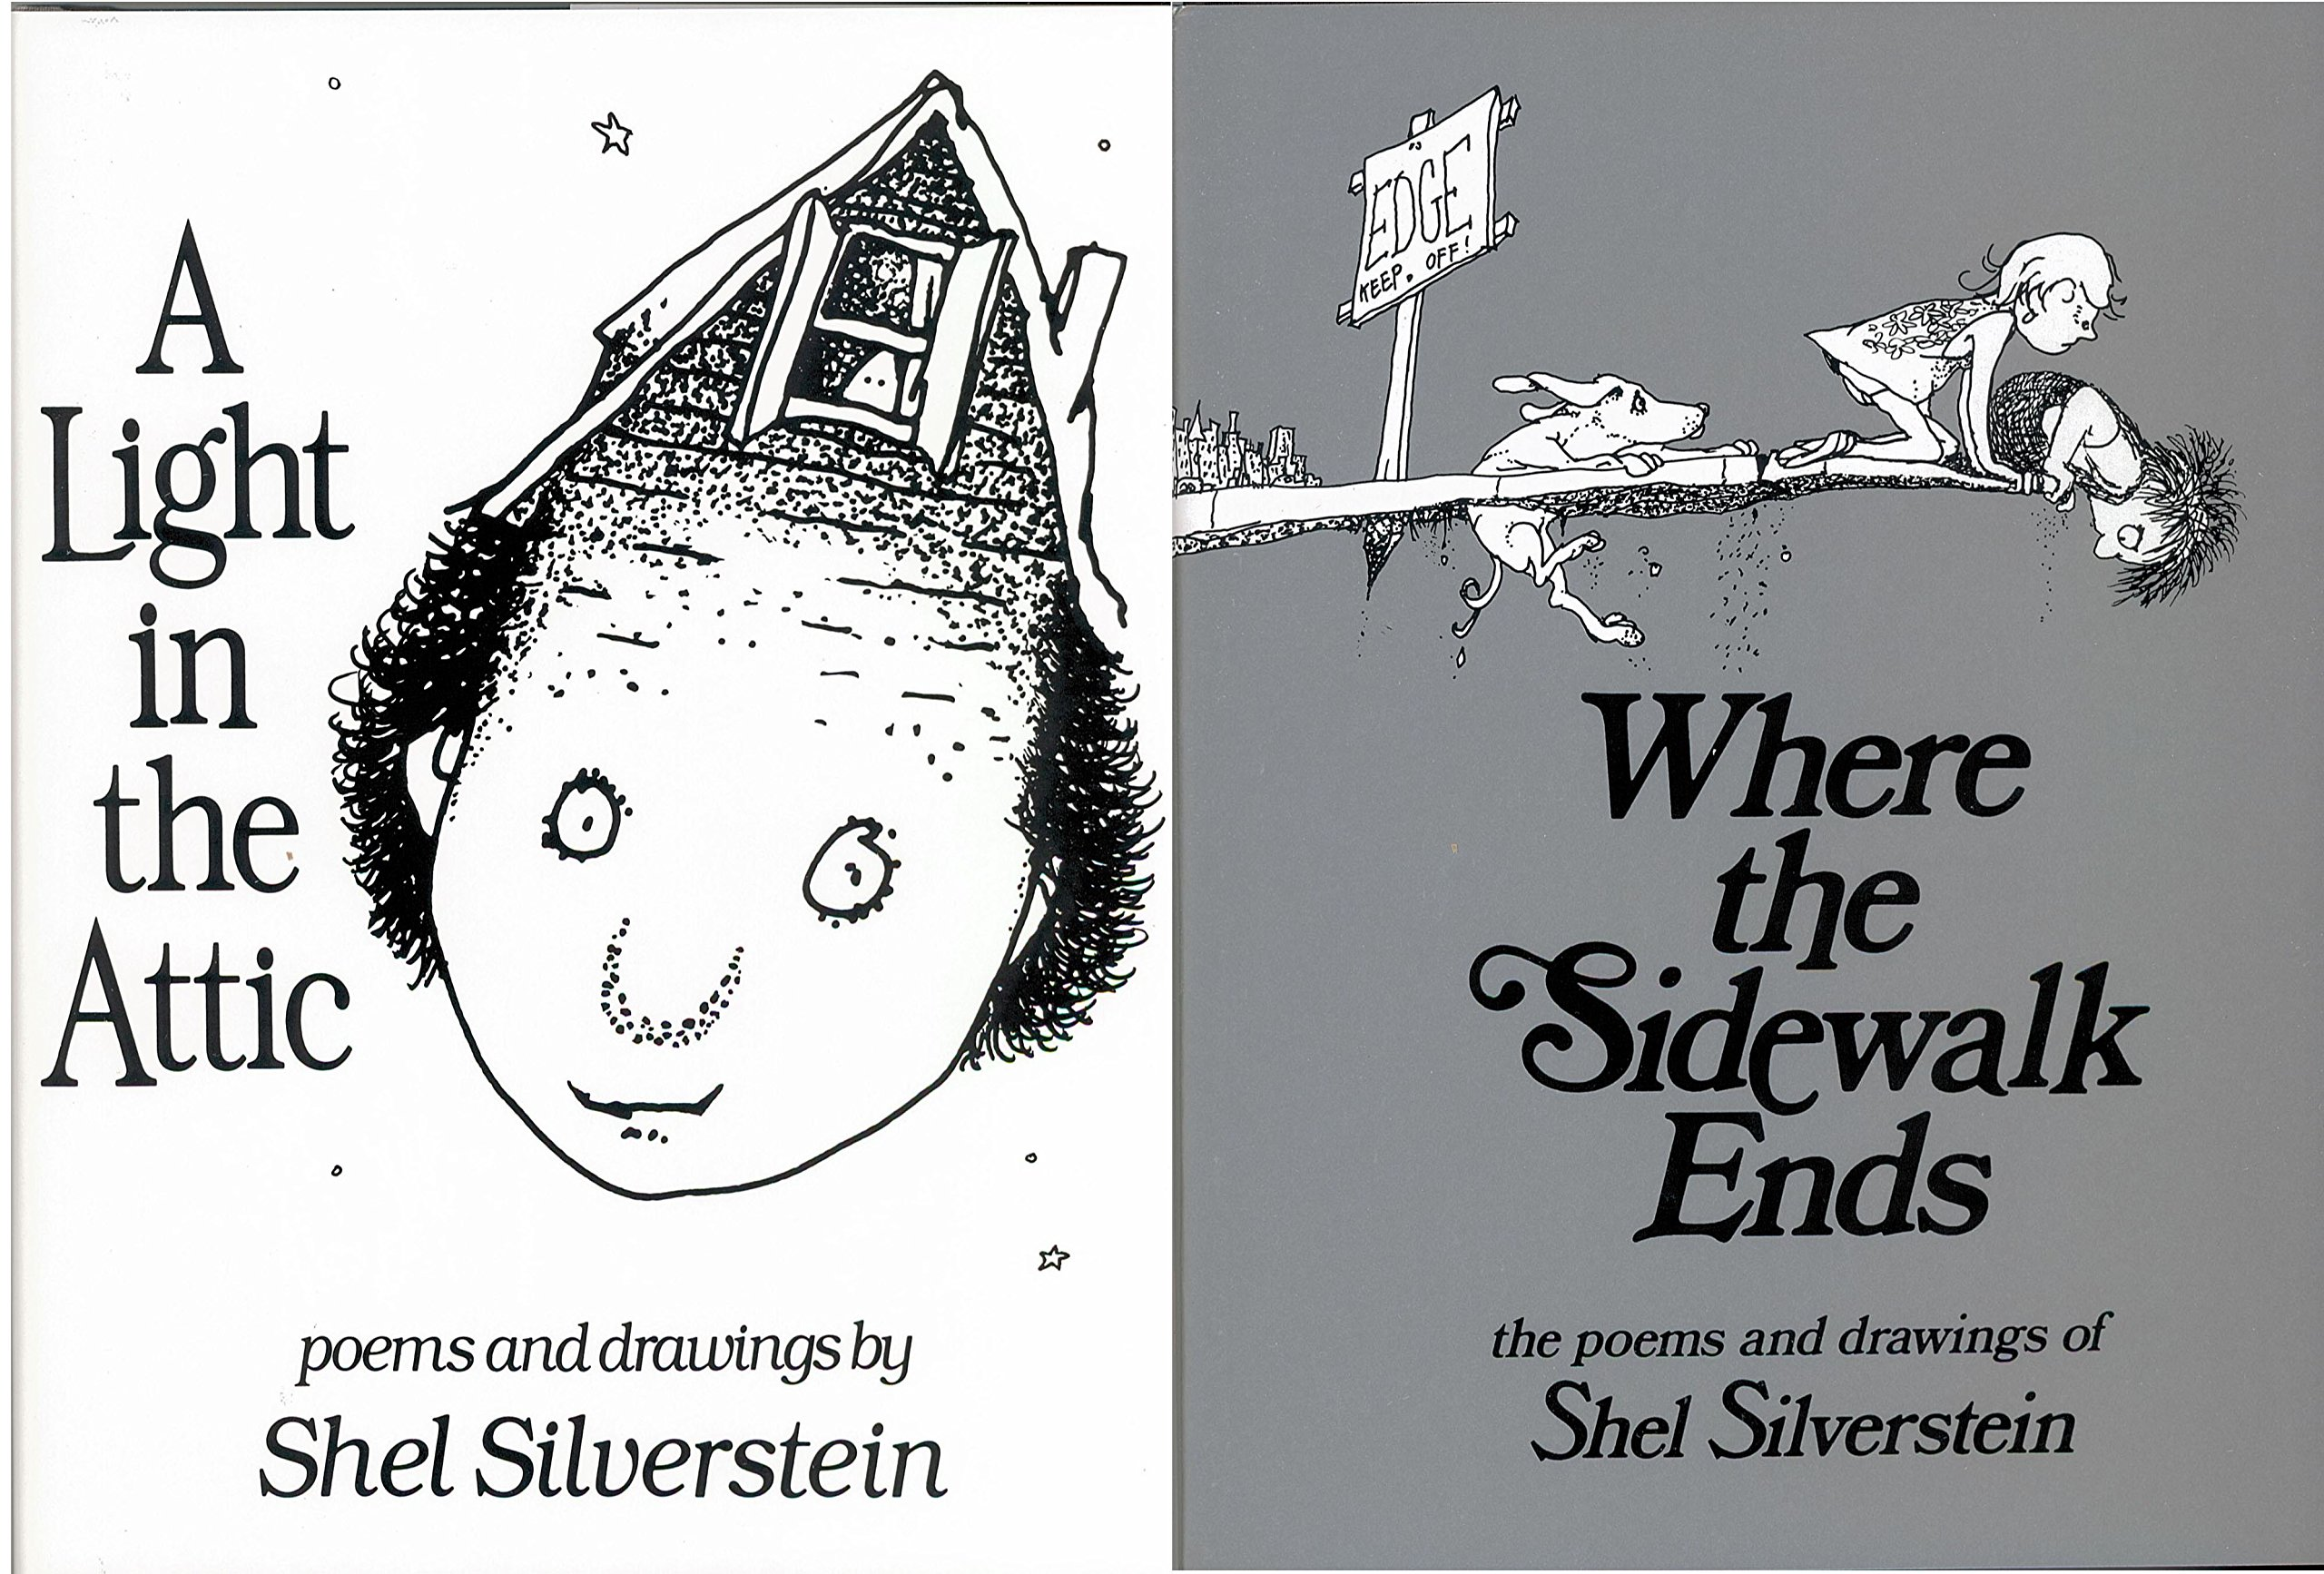 Shel Silverstein Pack 2 Book Set: Where the Sidewalk Ends and A Light in the Attic ebook